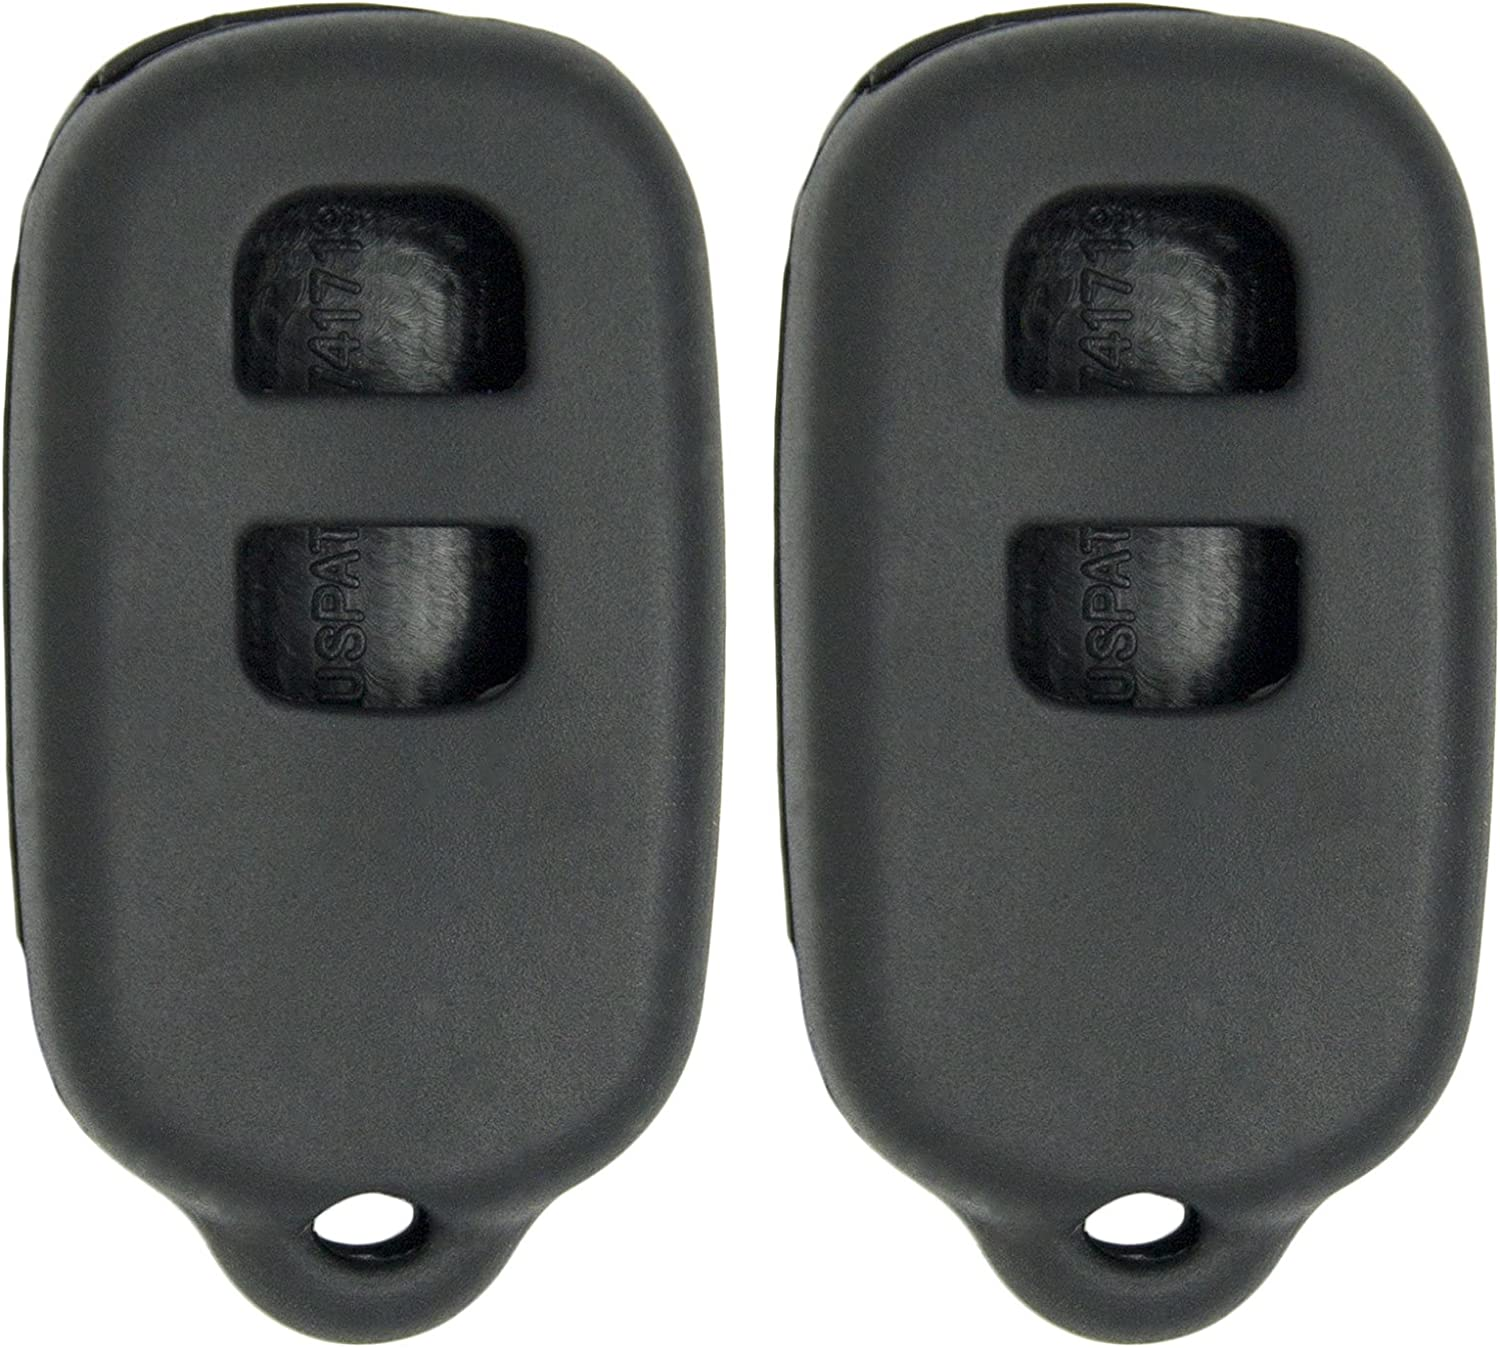 2 Pack Black Keyless2Go New Silicone Cover Protective Cases for Remote Key Fobs with FCC GQ43VT14T HYQ12BAN HYQ12BBX